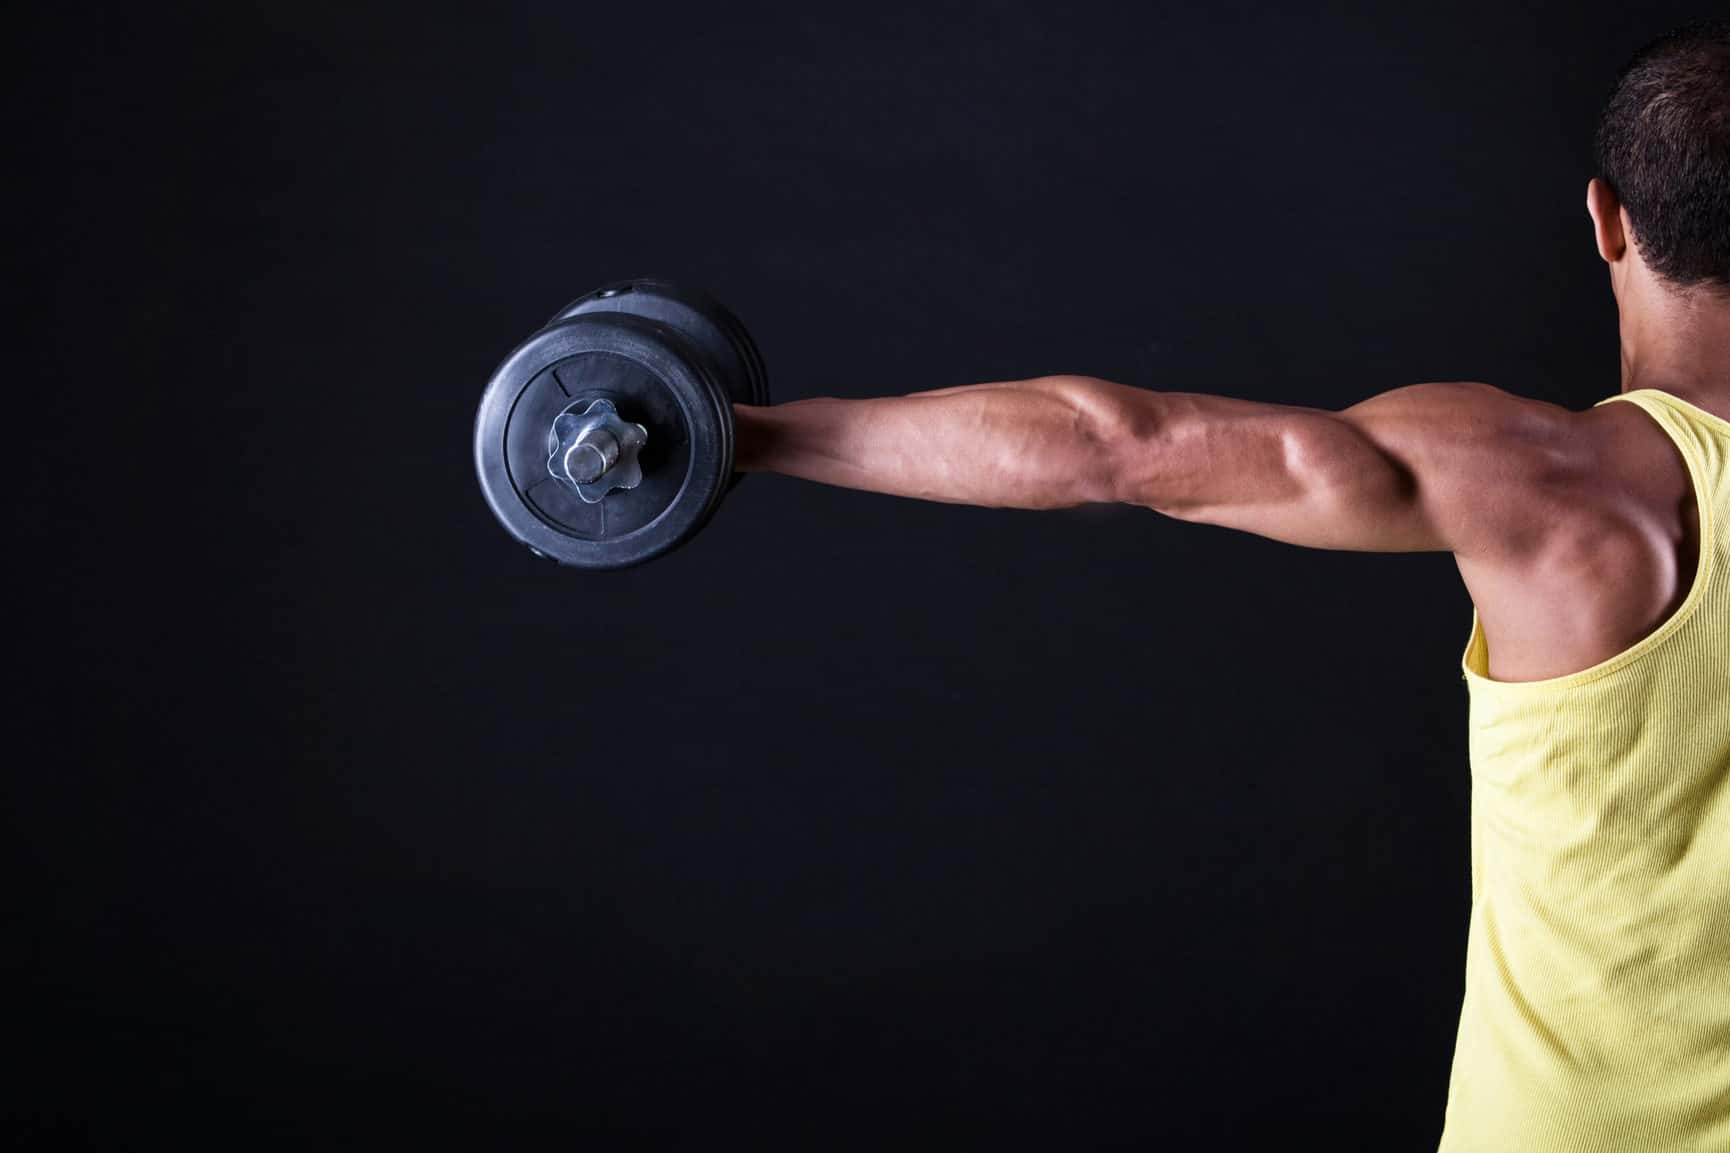 Build Boulder Shoulders With This Dumbbell Workout Routine